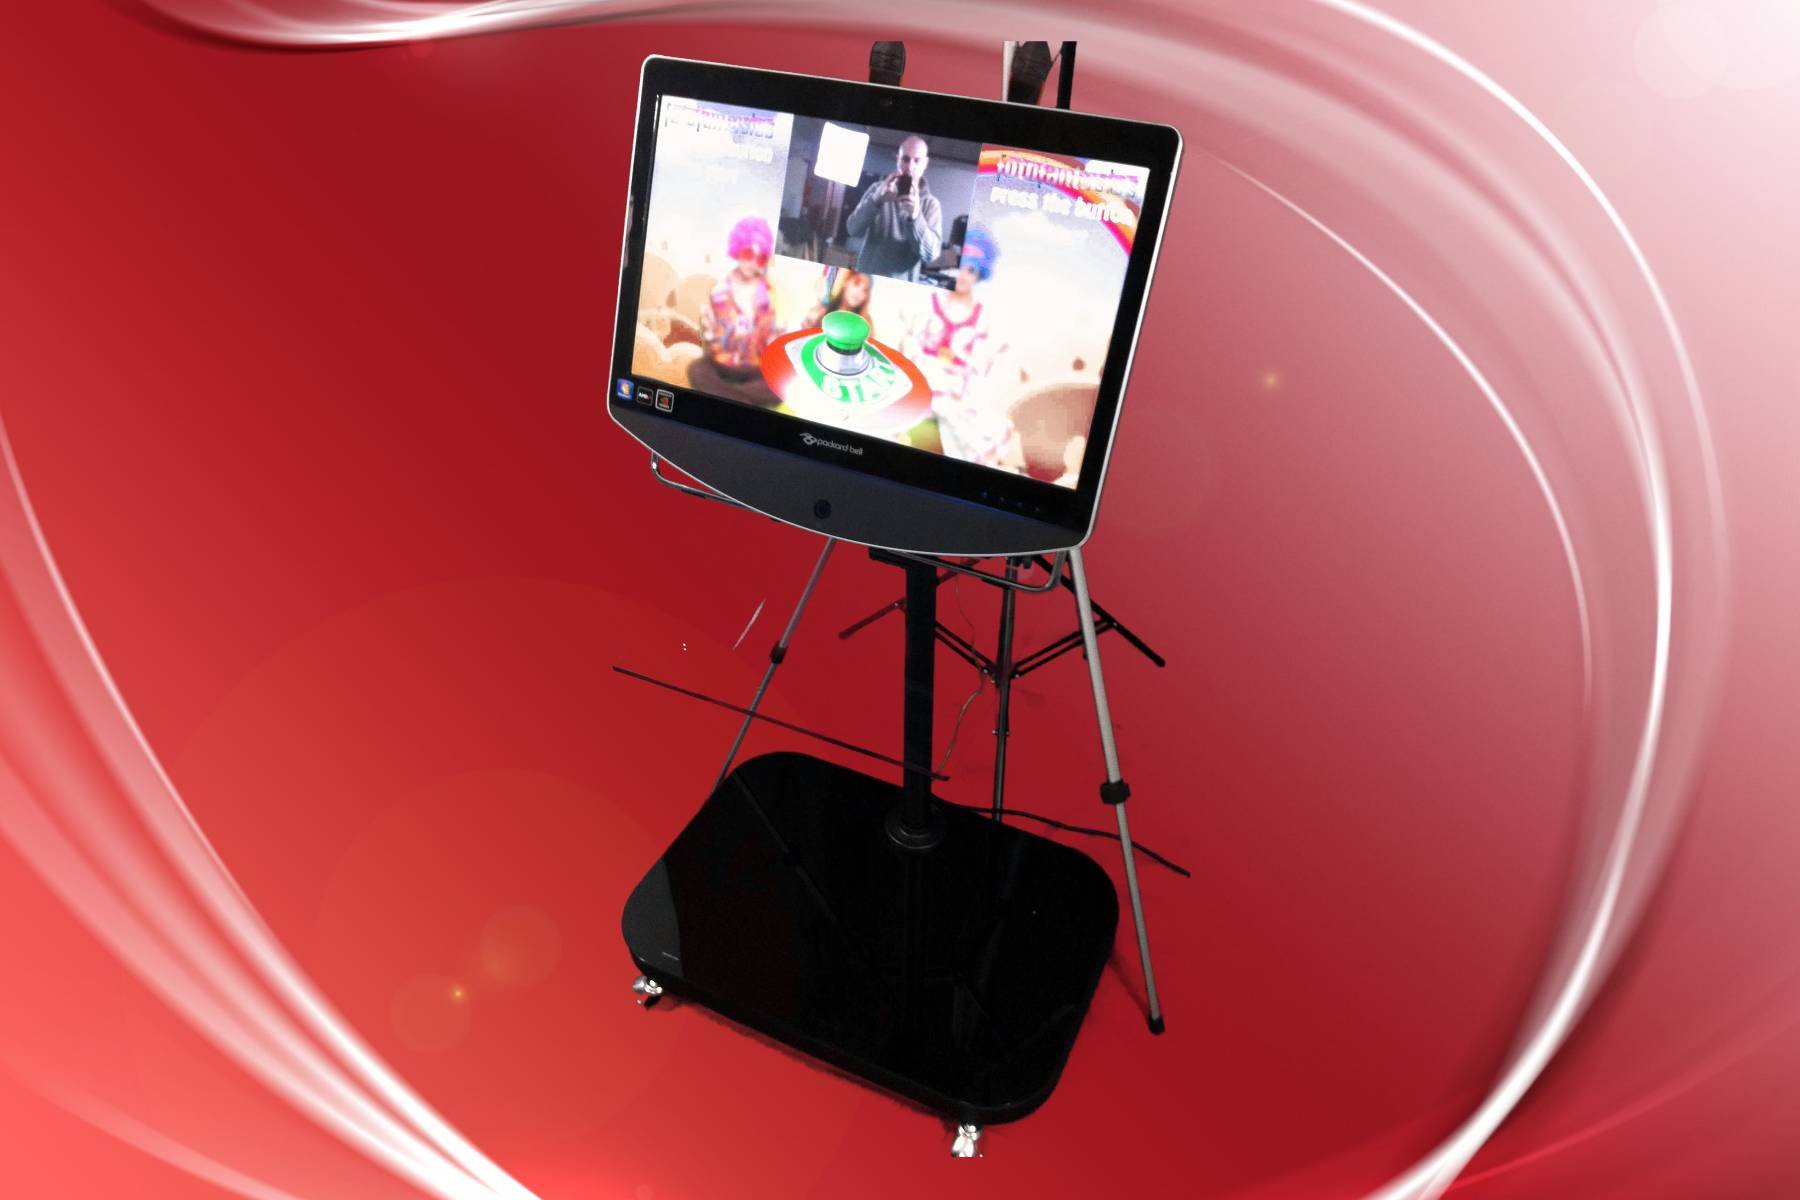 Our touch screen photo kiosk